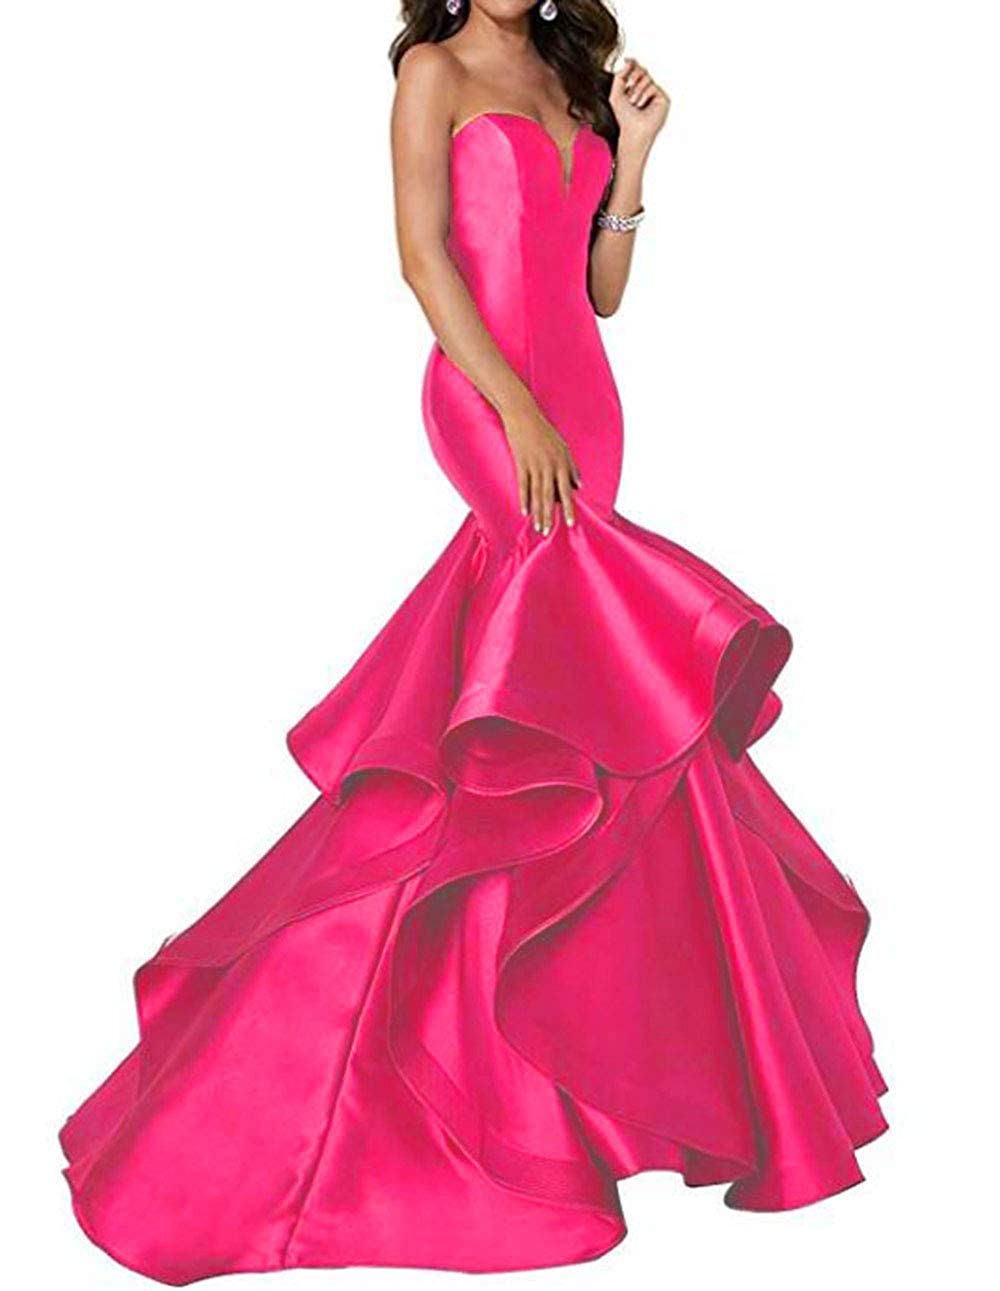 Hot Pink alilith.Z Sexy Sweetheart Prom Dresses Mermaid Tired Satin Train Formal Evening Dresses Party Gowns for Women 2019